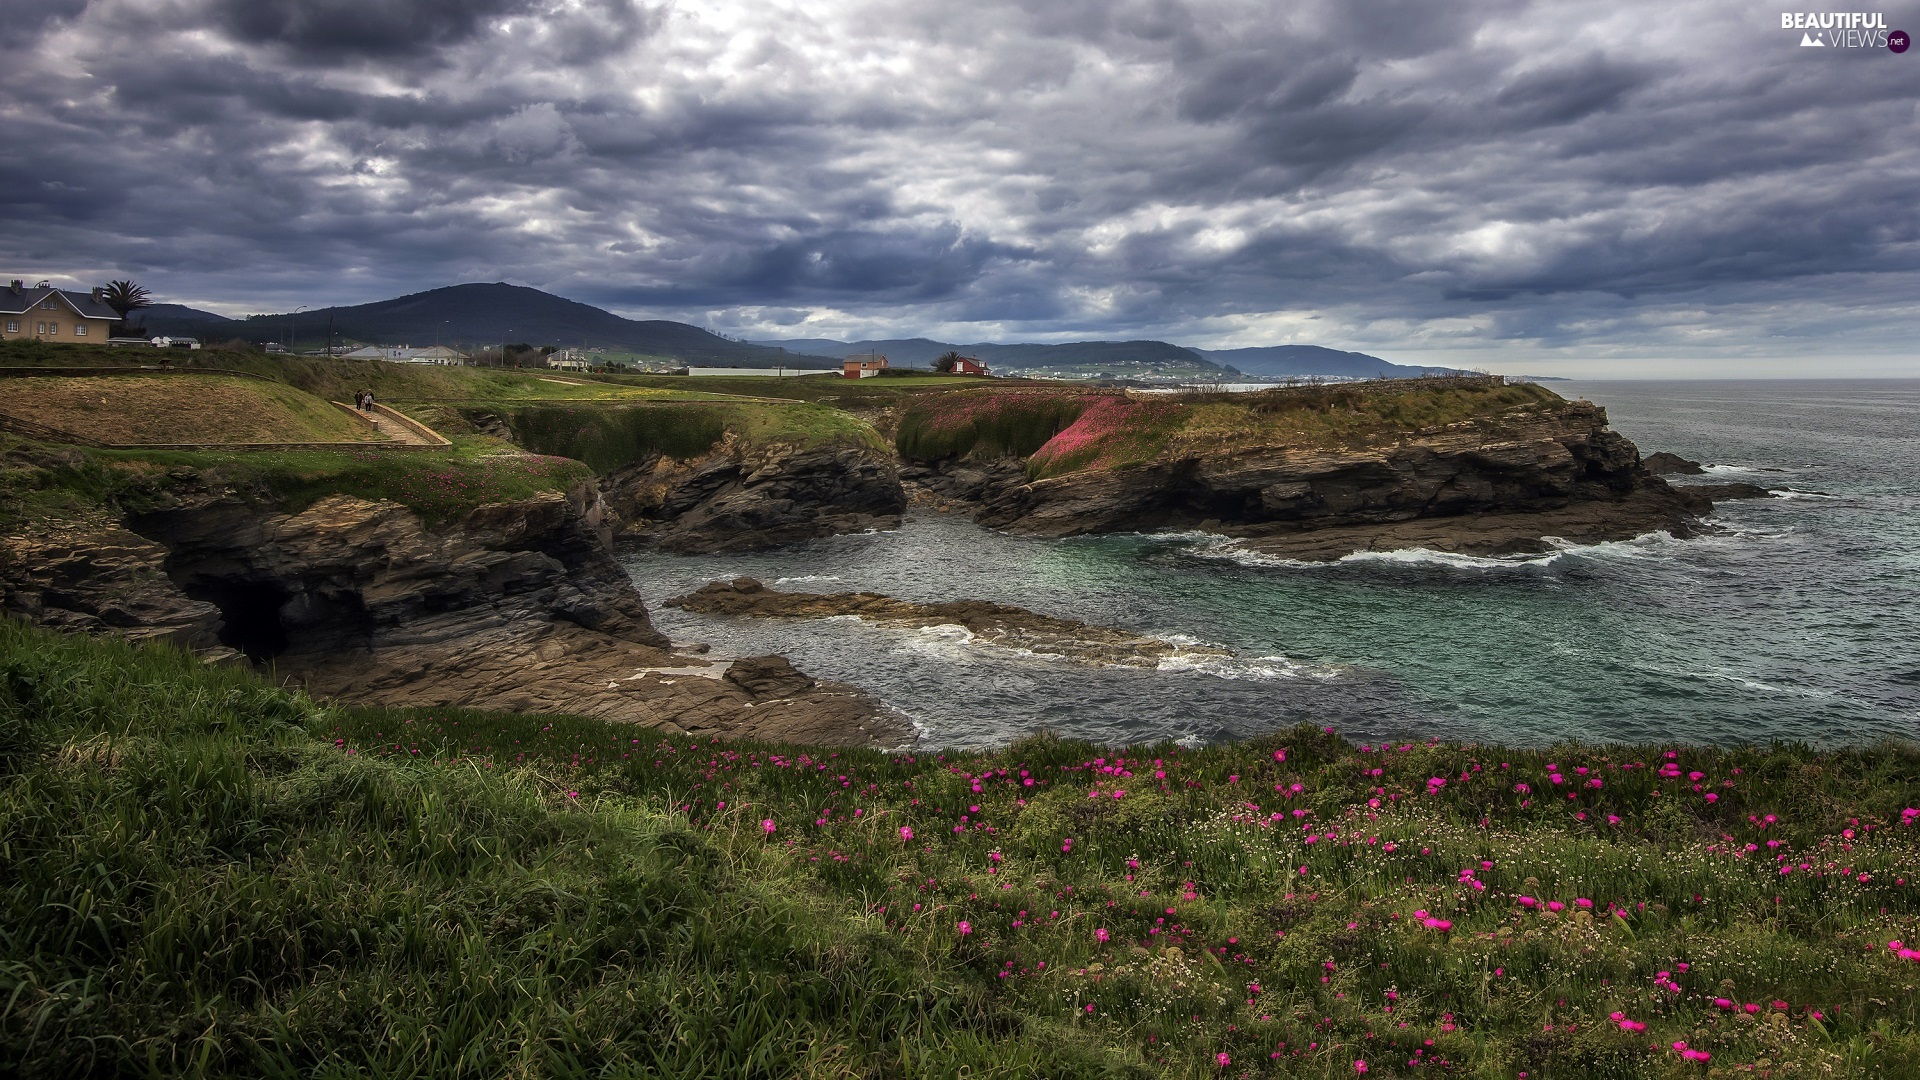 rocks, Houses, dark, Flowers, Coast, sea, clouds